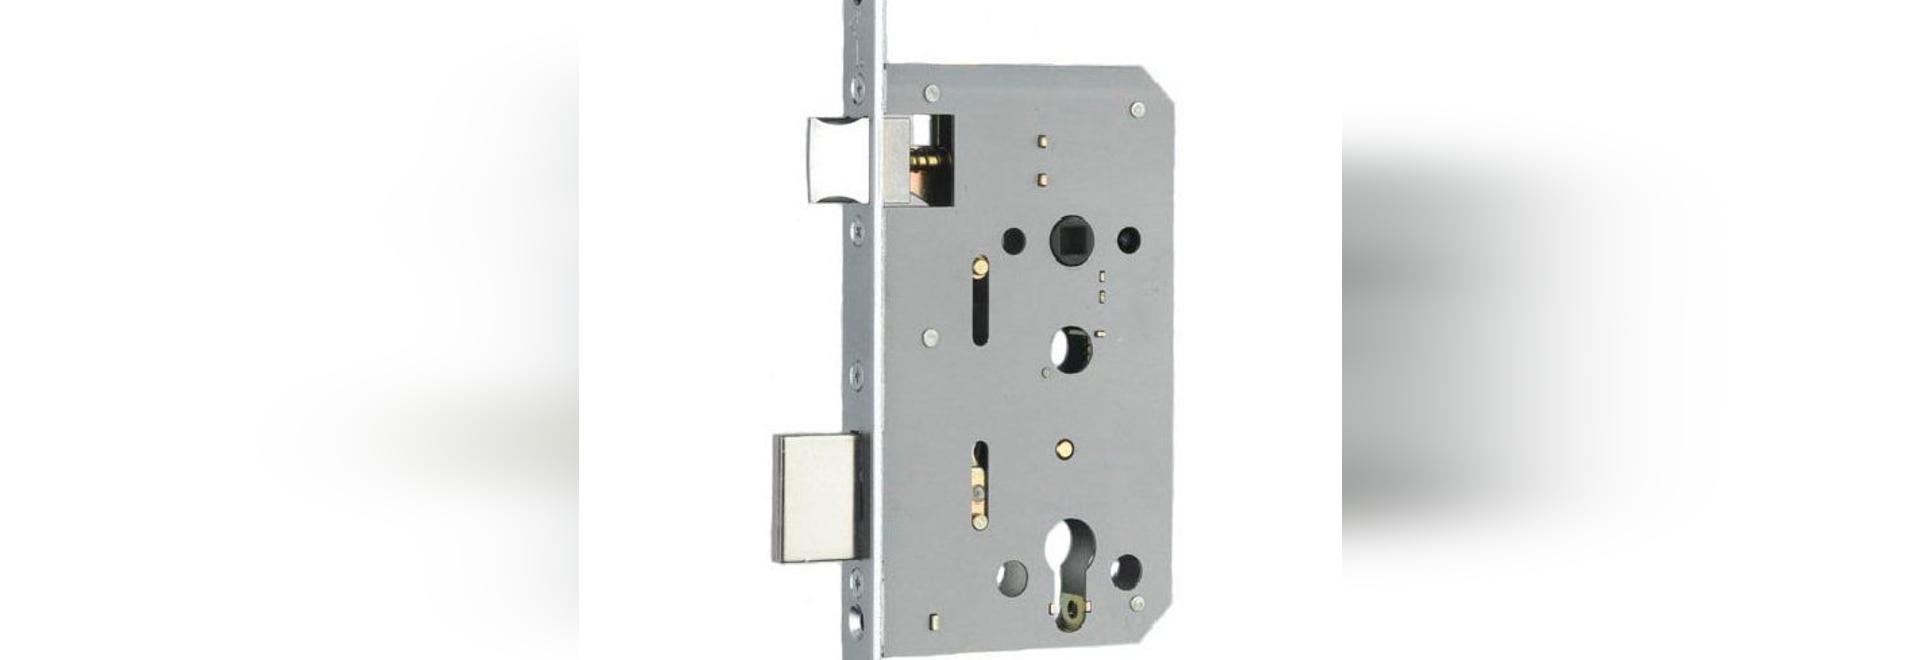 NEW: security cylinder lock by Mul-T-Lock